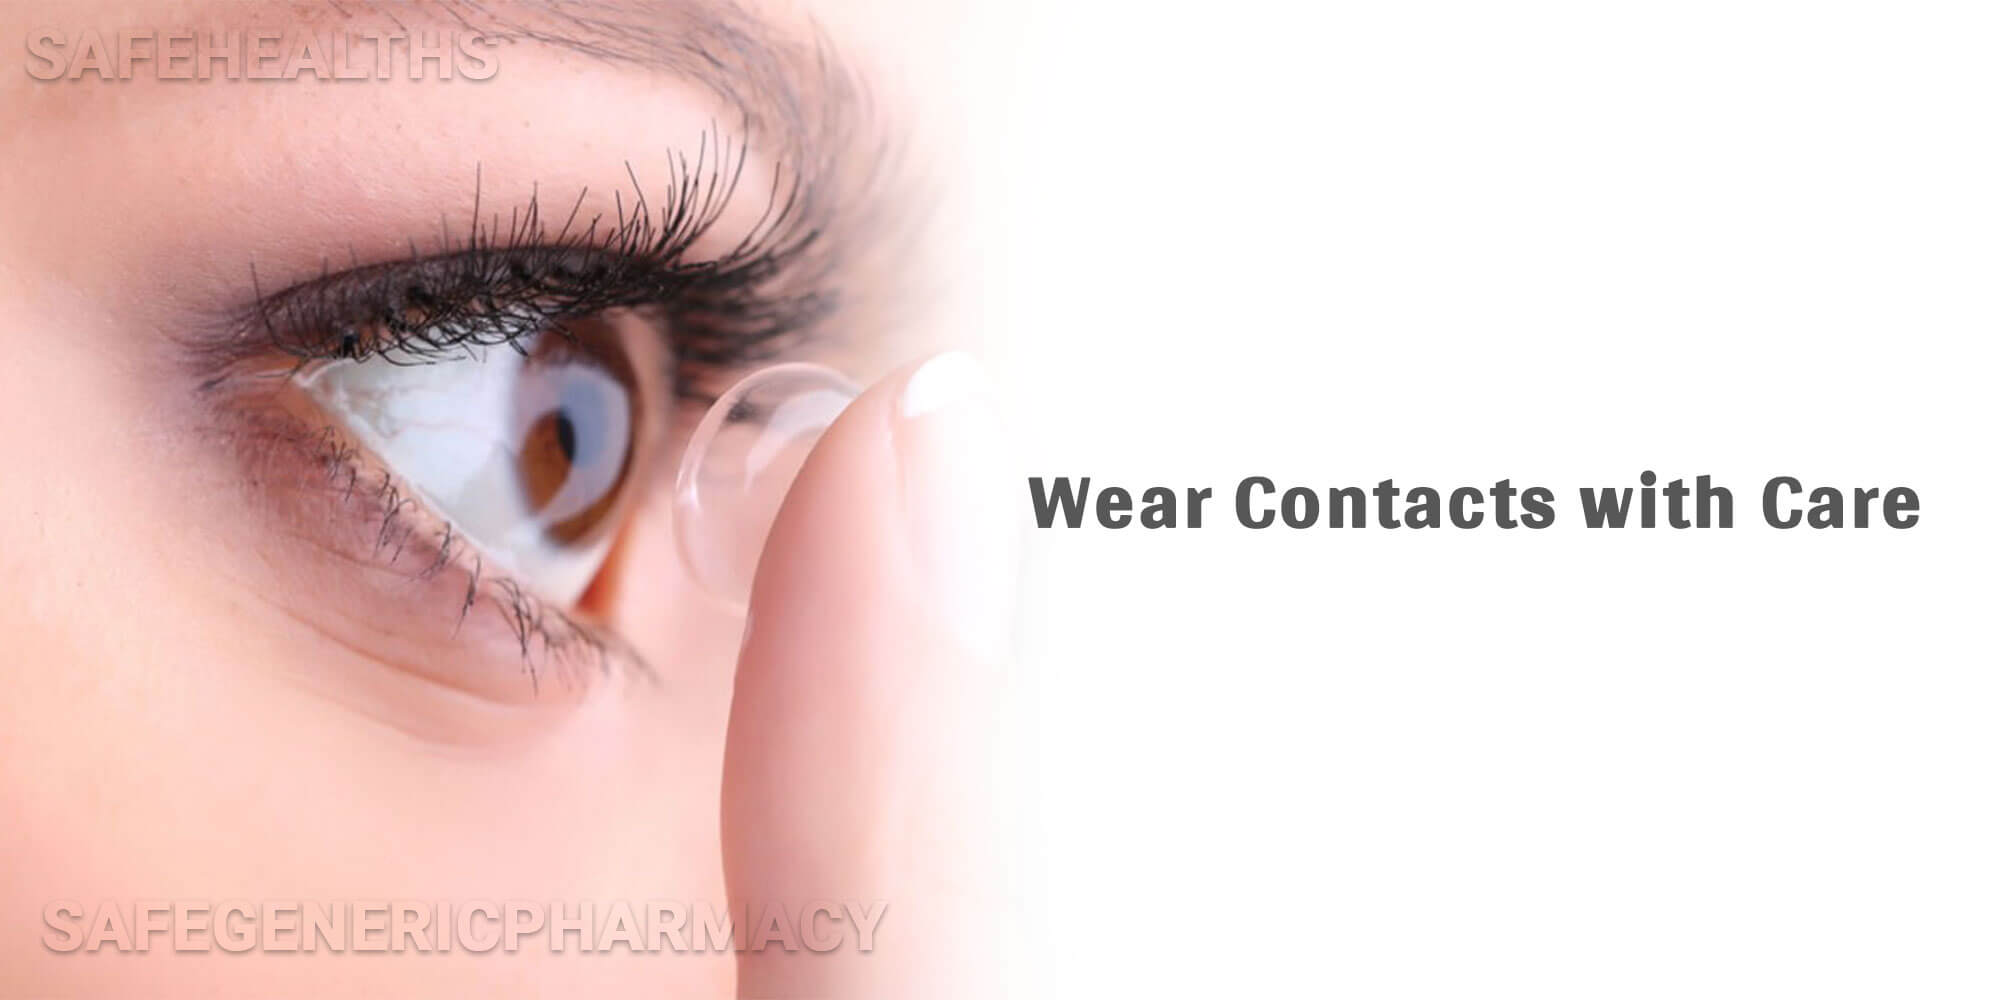 Wear Contacts with Care